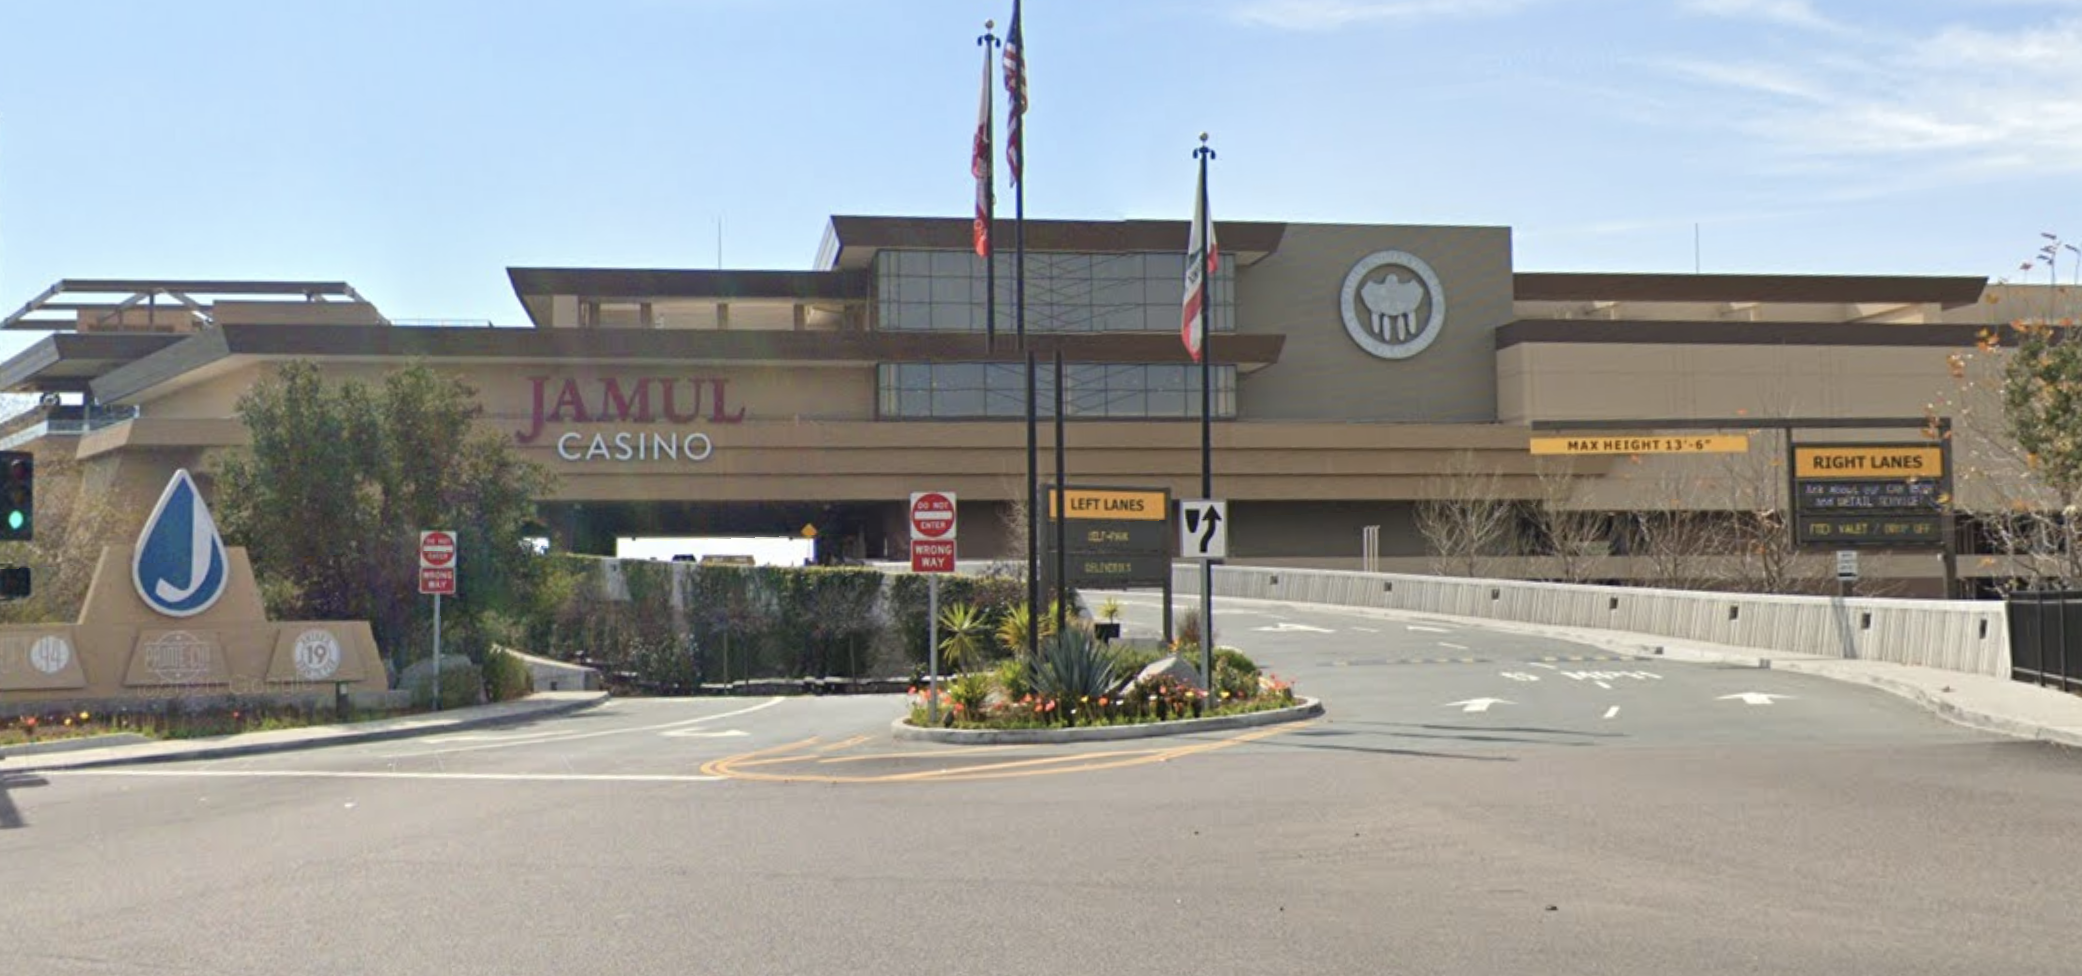 The Jamul Casino on the Jamul Indian Reservation is seen in an undated Google Maps street view photo.